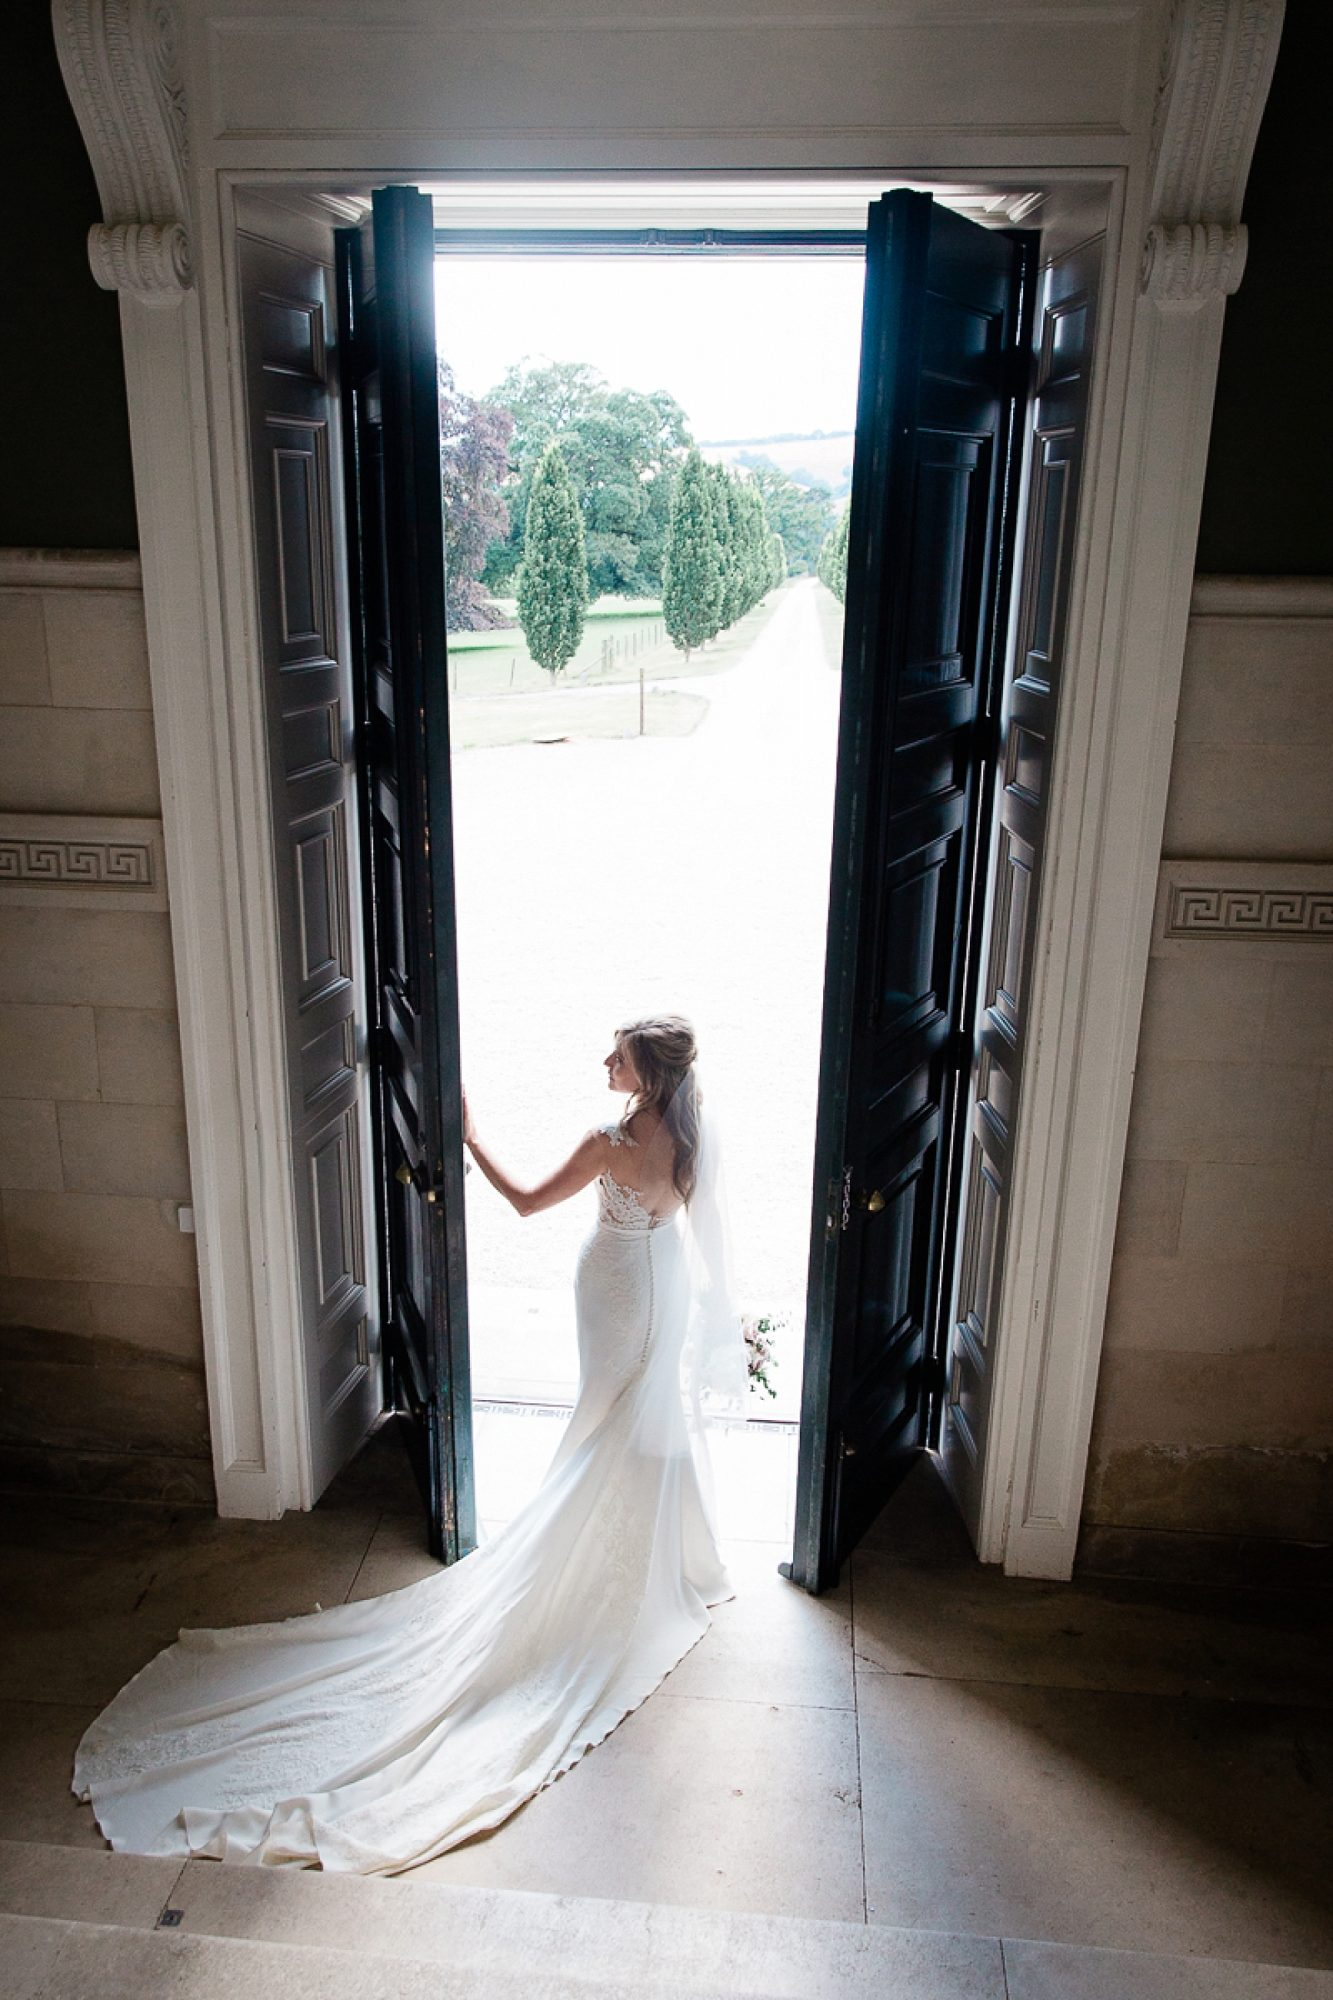 Bride in pronovias dress stands holding the giant front door at Pynes house wedding